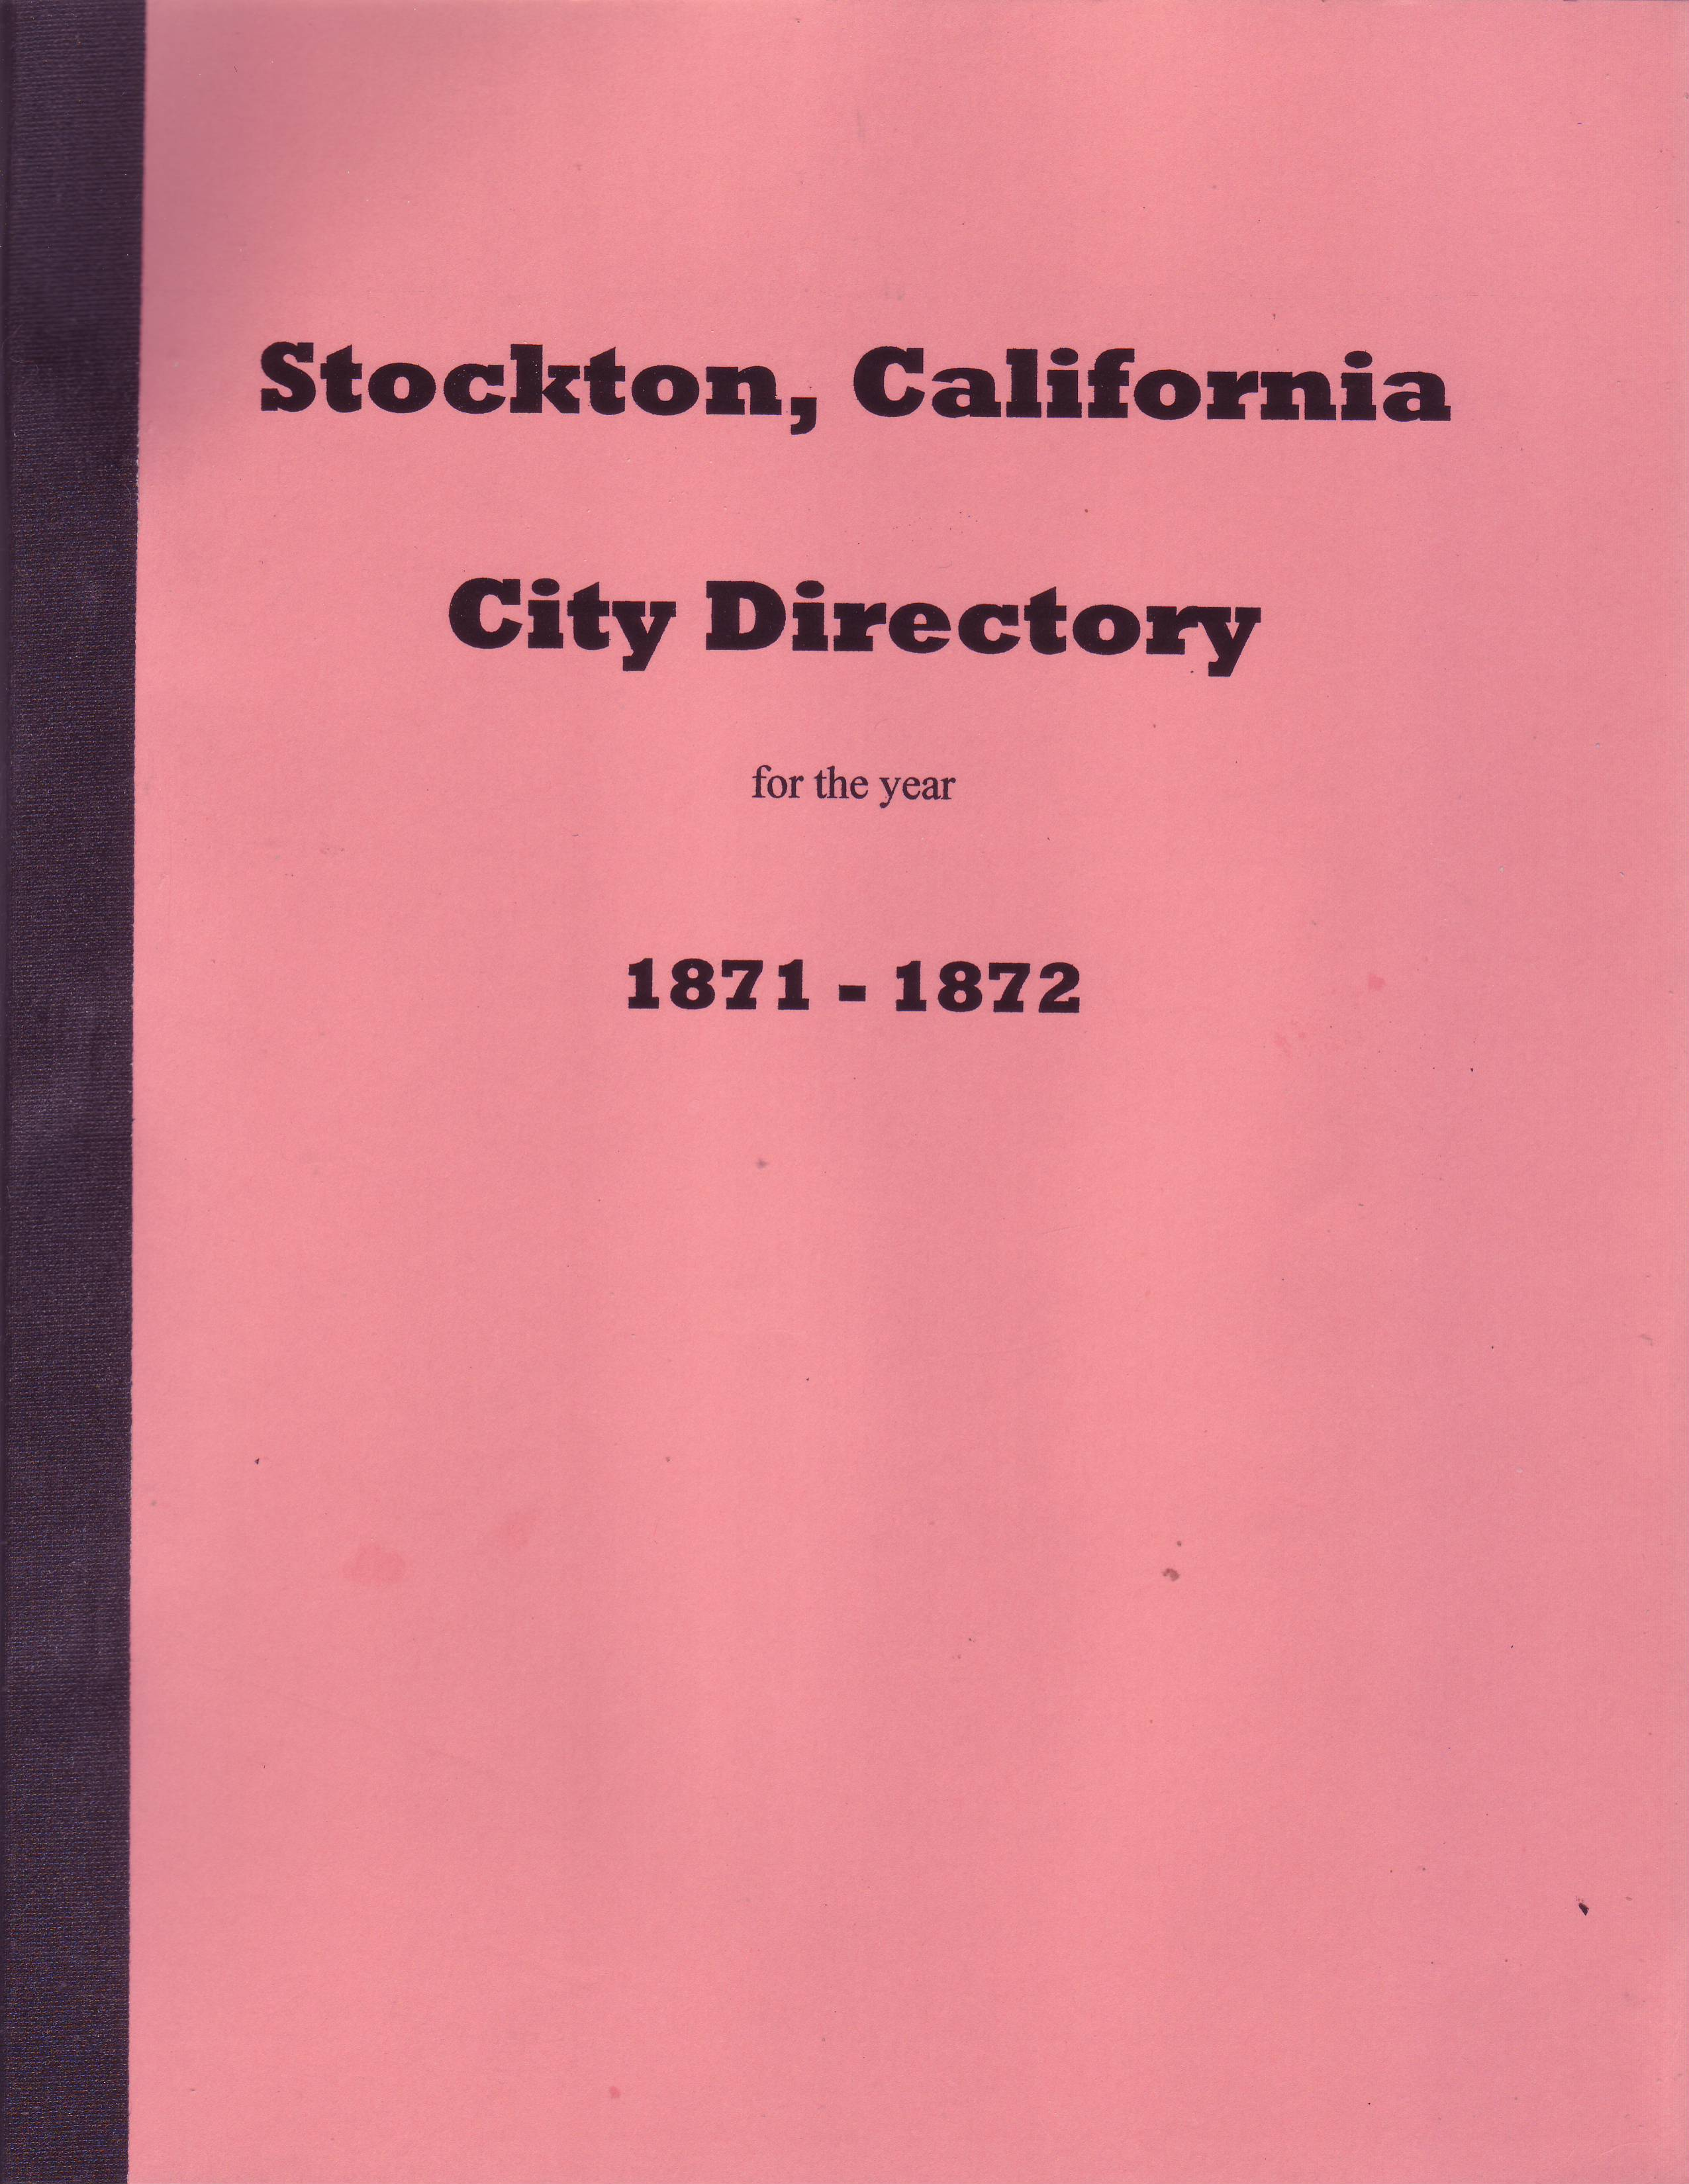 Stockton, California City Directory 1871-1872